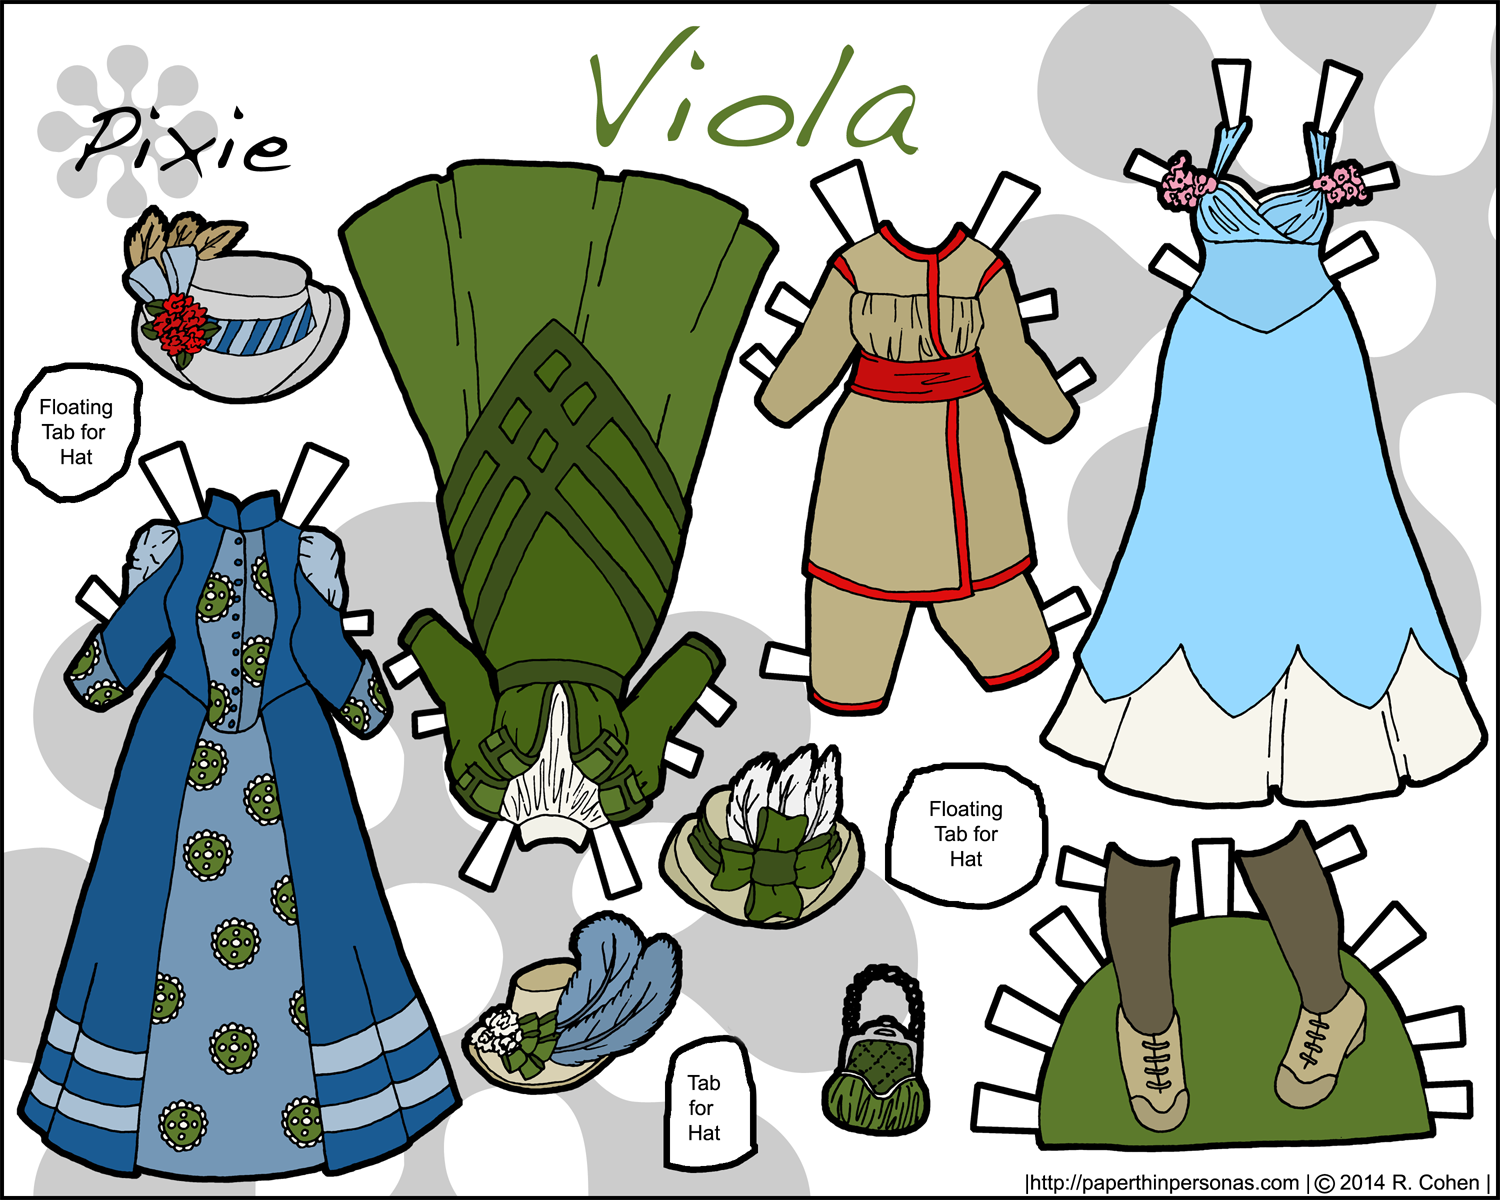 An 1890s paper doll wardrobe from paperthinpersonas.com